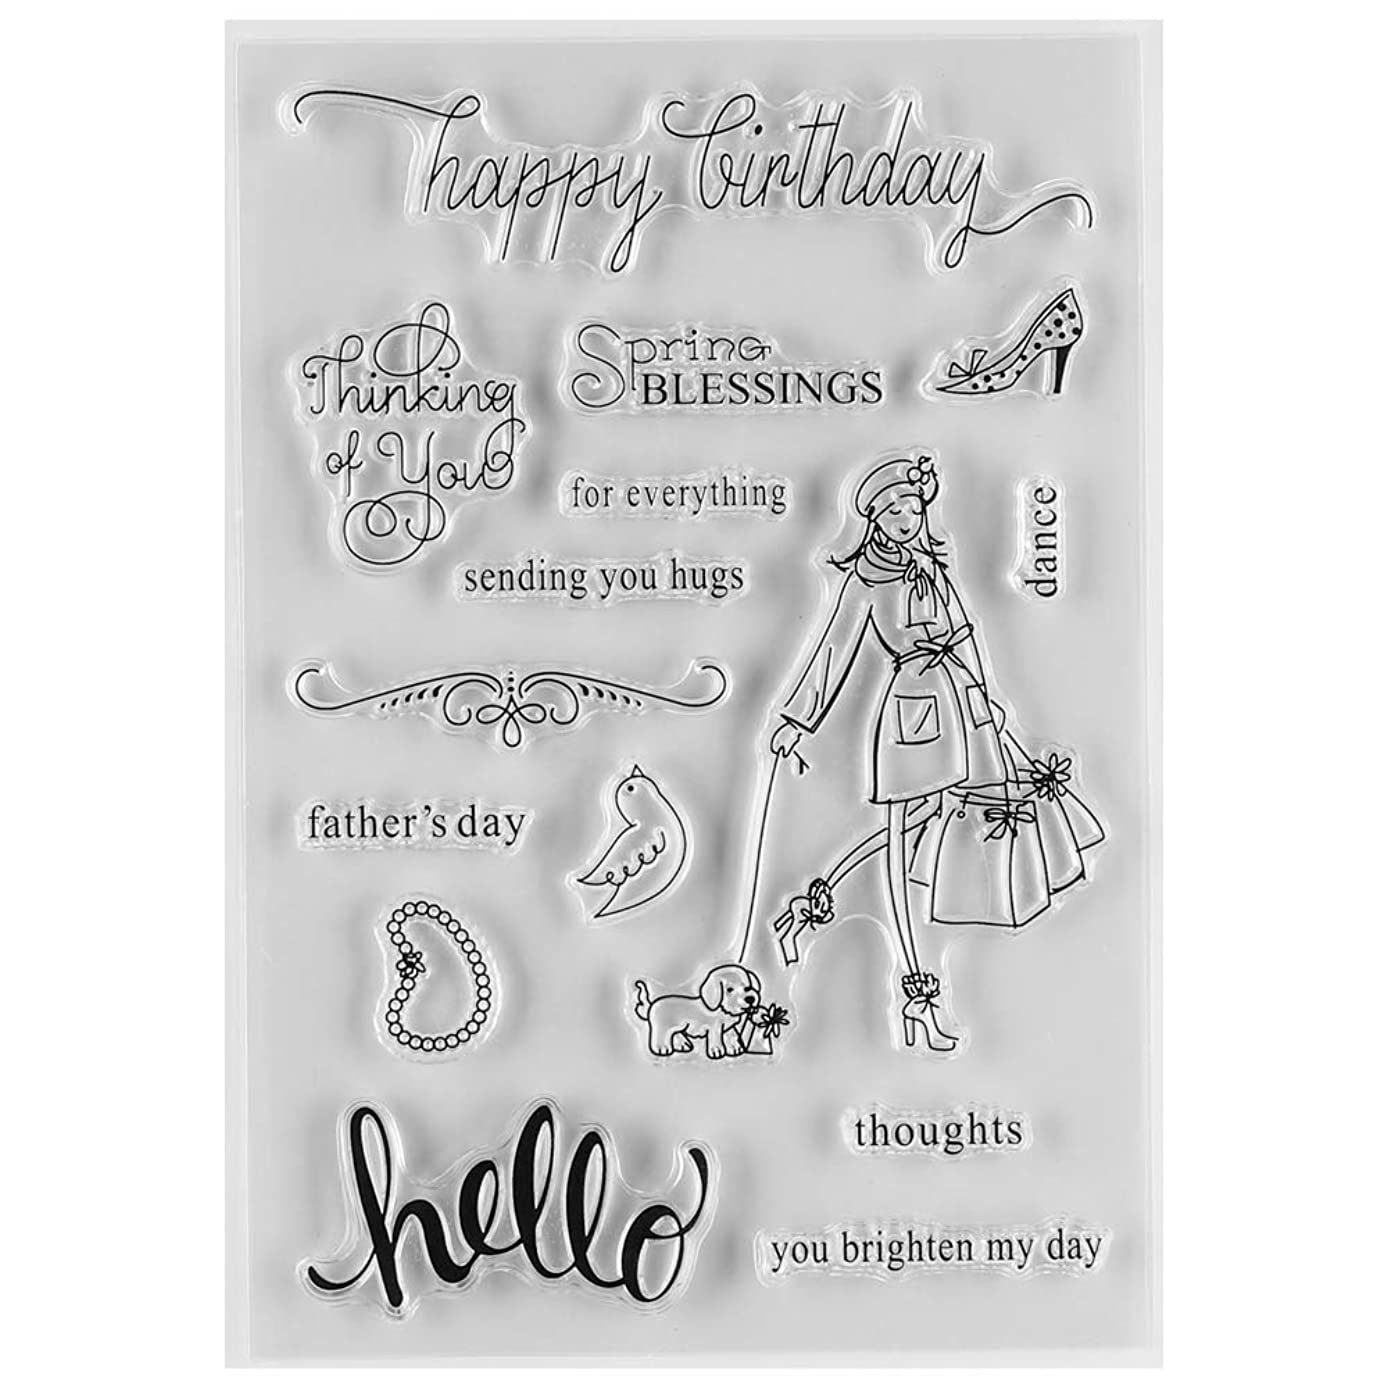 MaGuo Happy Birthday Sending You Hugs Words and Phrase Clear Rubber Stamps for DIY Scrapbooking Paper Craft or Card Making Decoration